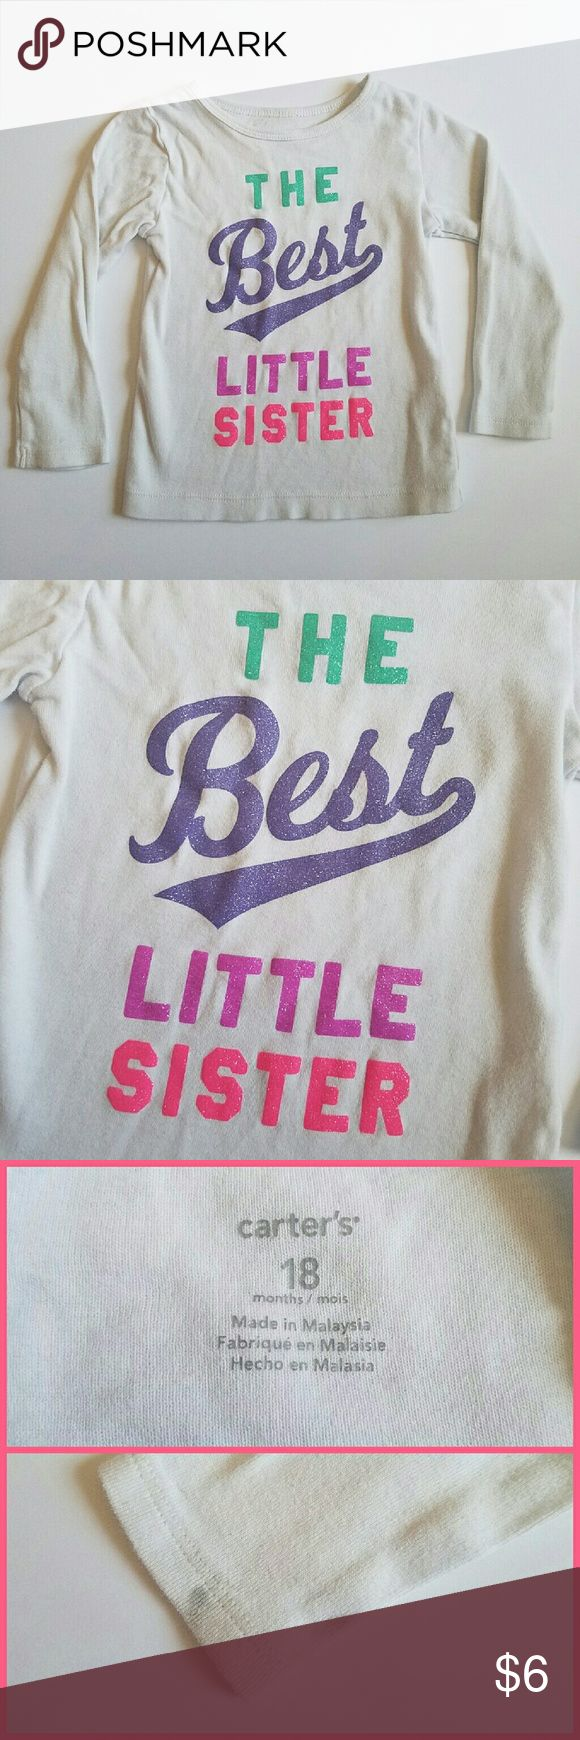 """Carter's Sister Top Cute long sleep top from Carter's. Says """"the best little sister"""" in glitter. There is a spot on the right sleeve as pictured, unsure if it's removable. Size 18 months. Carter's Shirts & Tops"""